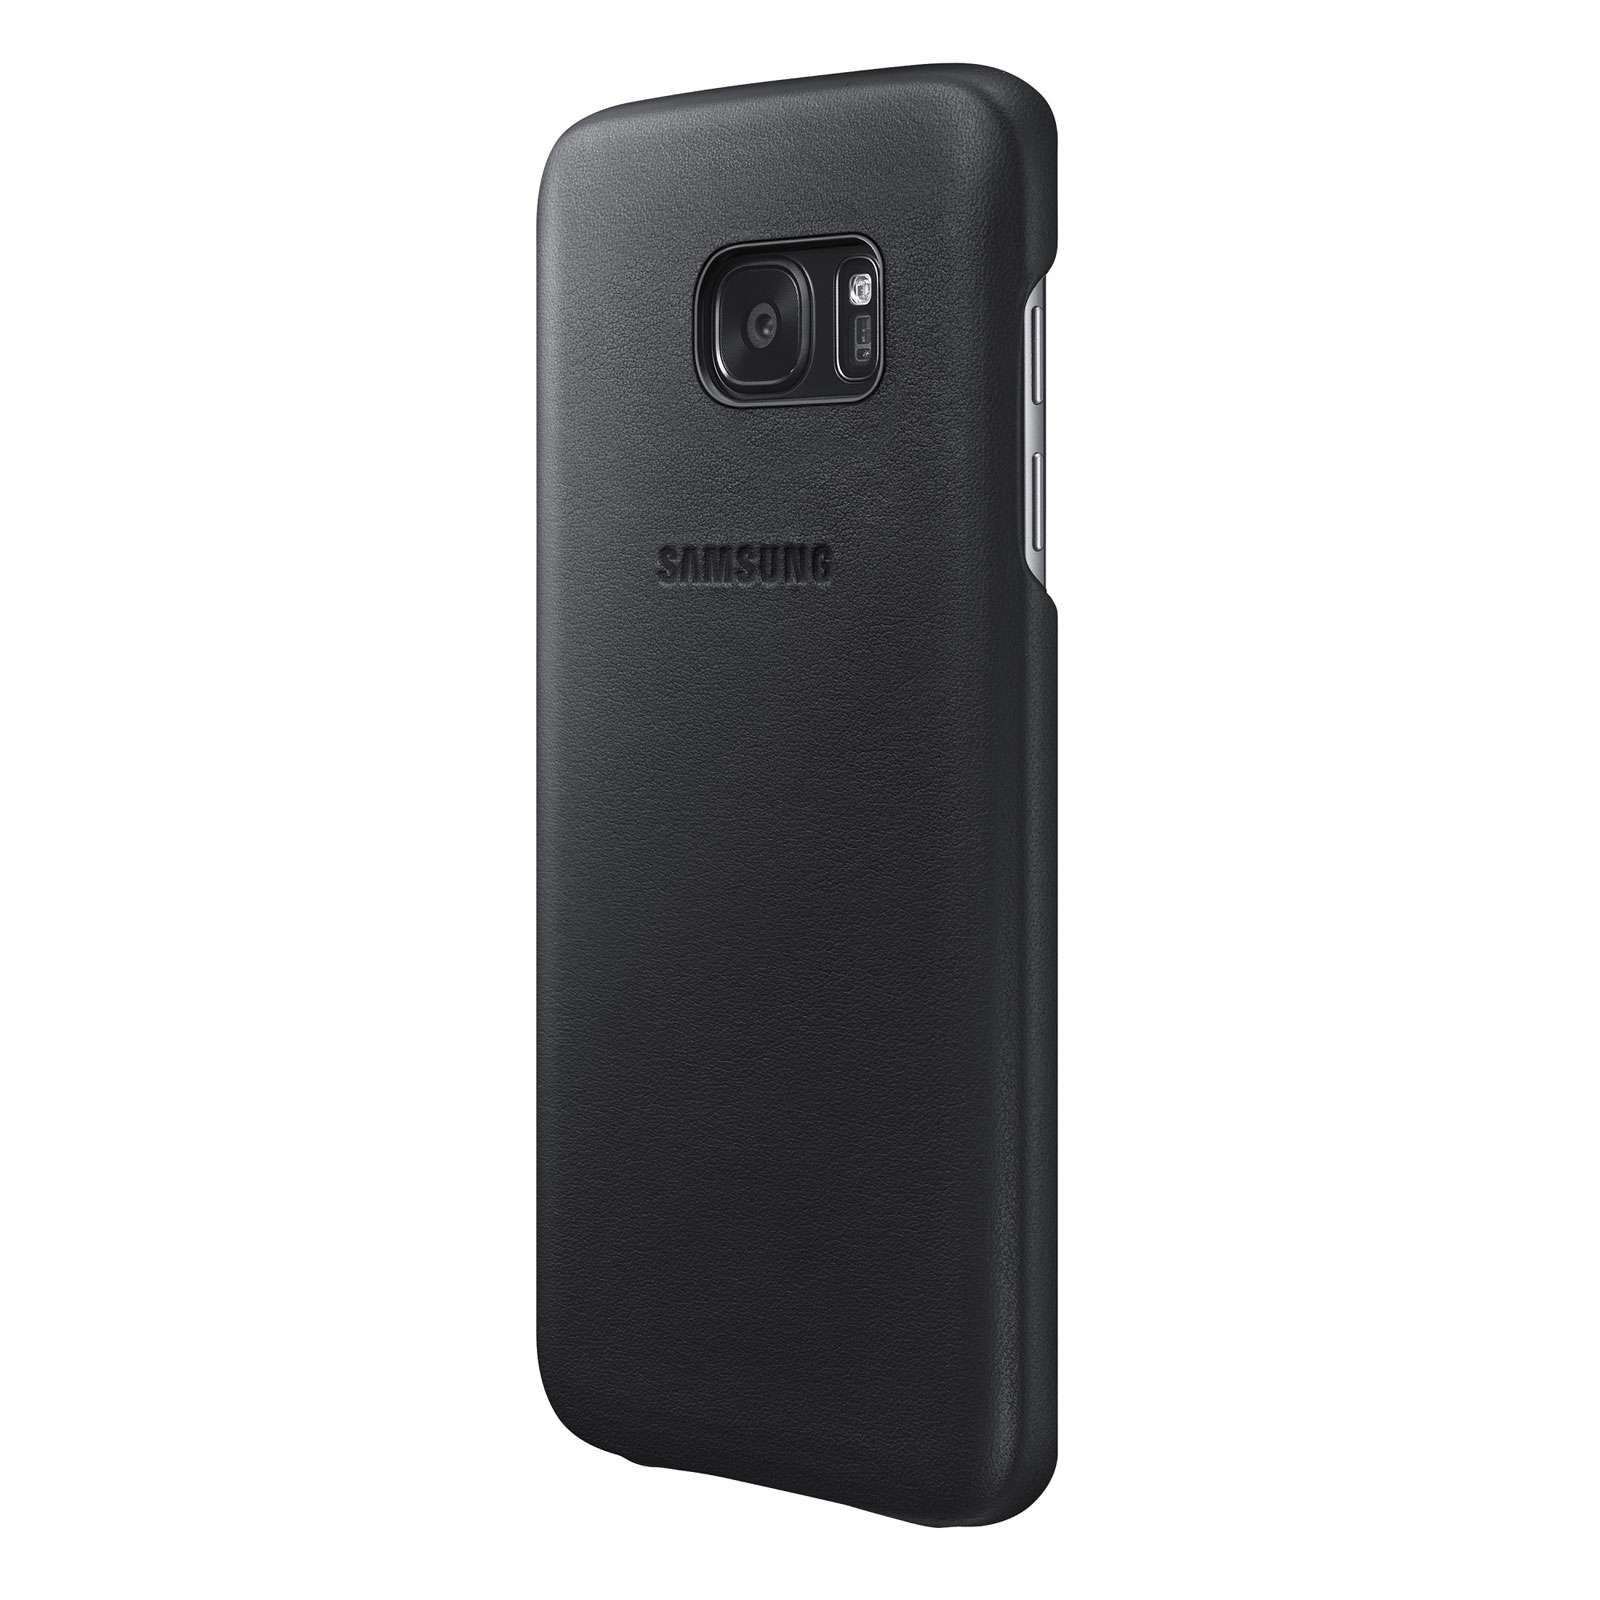 Чехол для Samsung Galaxy J5 Prime/On5 2016 DF sCase-35